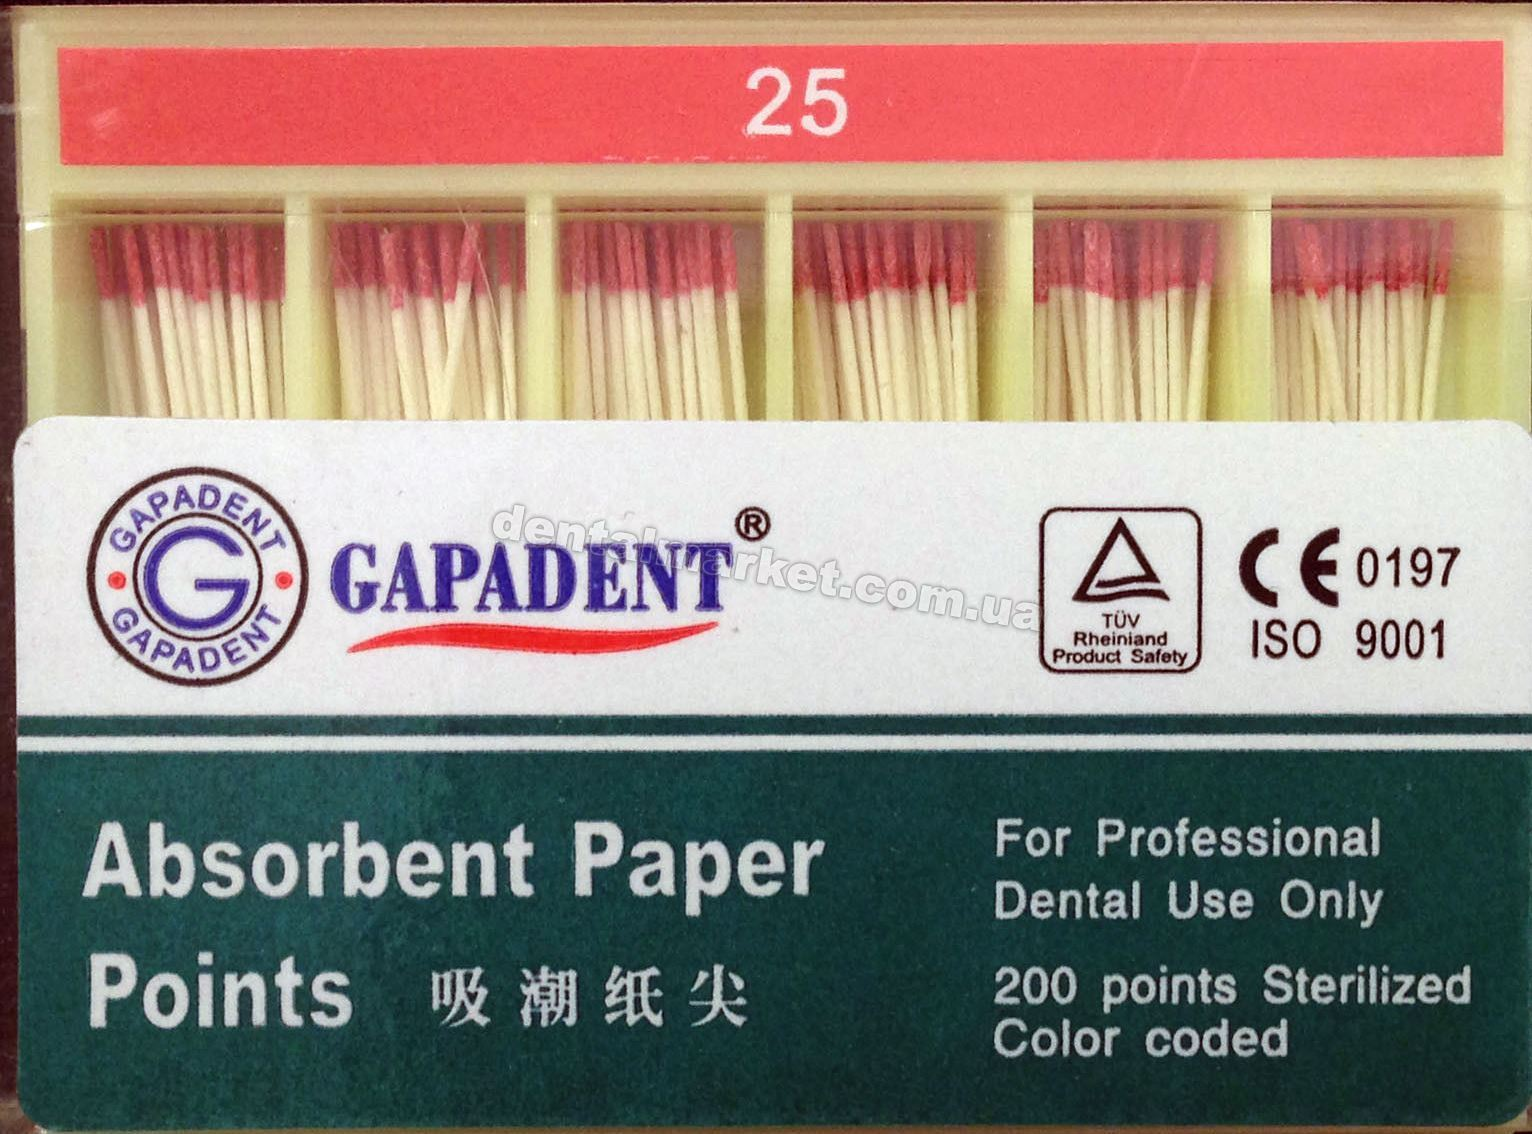 absorbent paper Absorbent paper points, cell pack (5 points/pack, 200 total points) made from highly absorbent paper every point is hand-rolled to ensure.